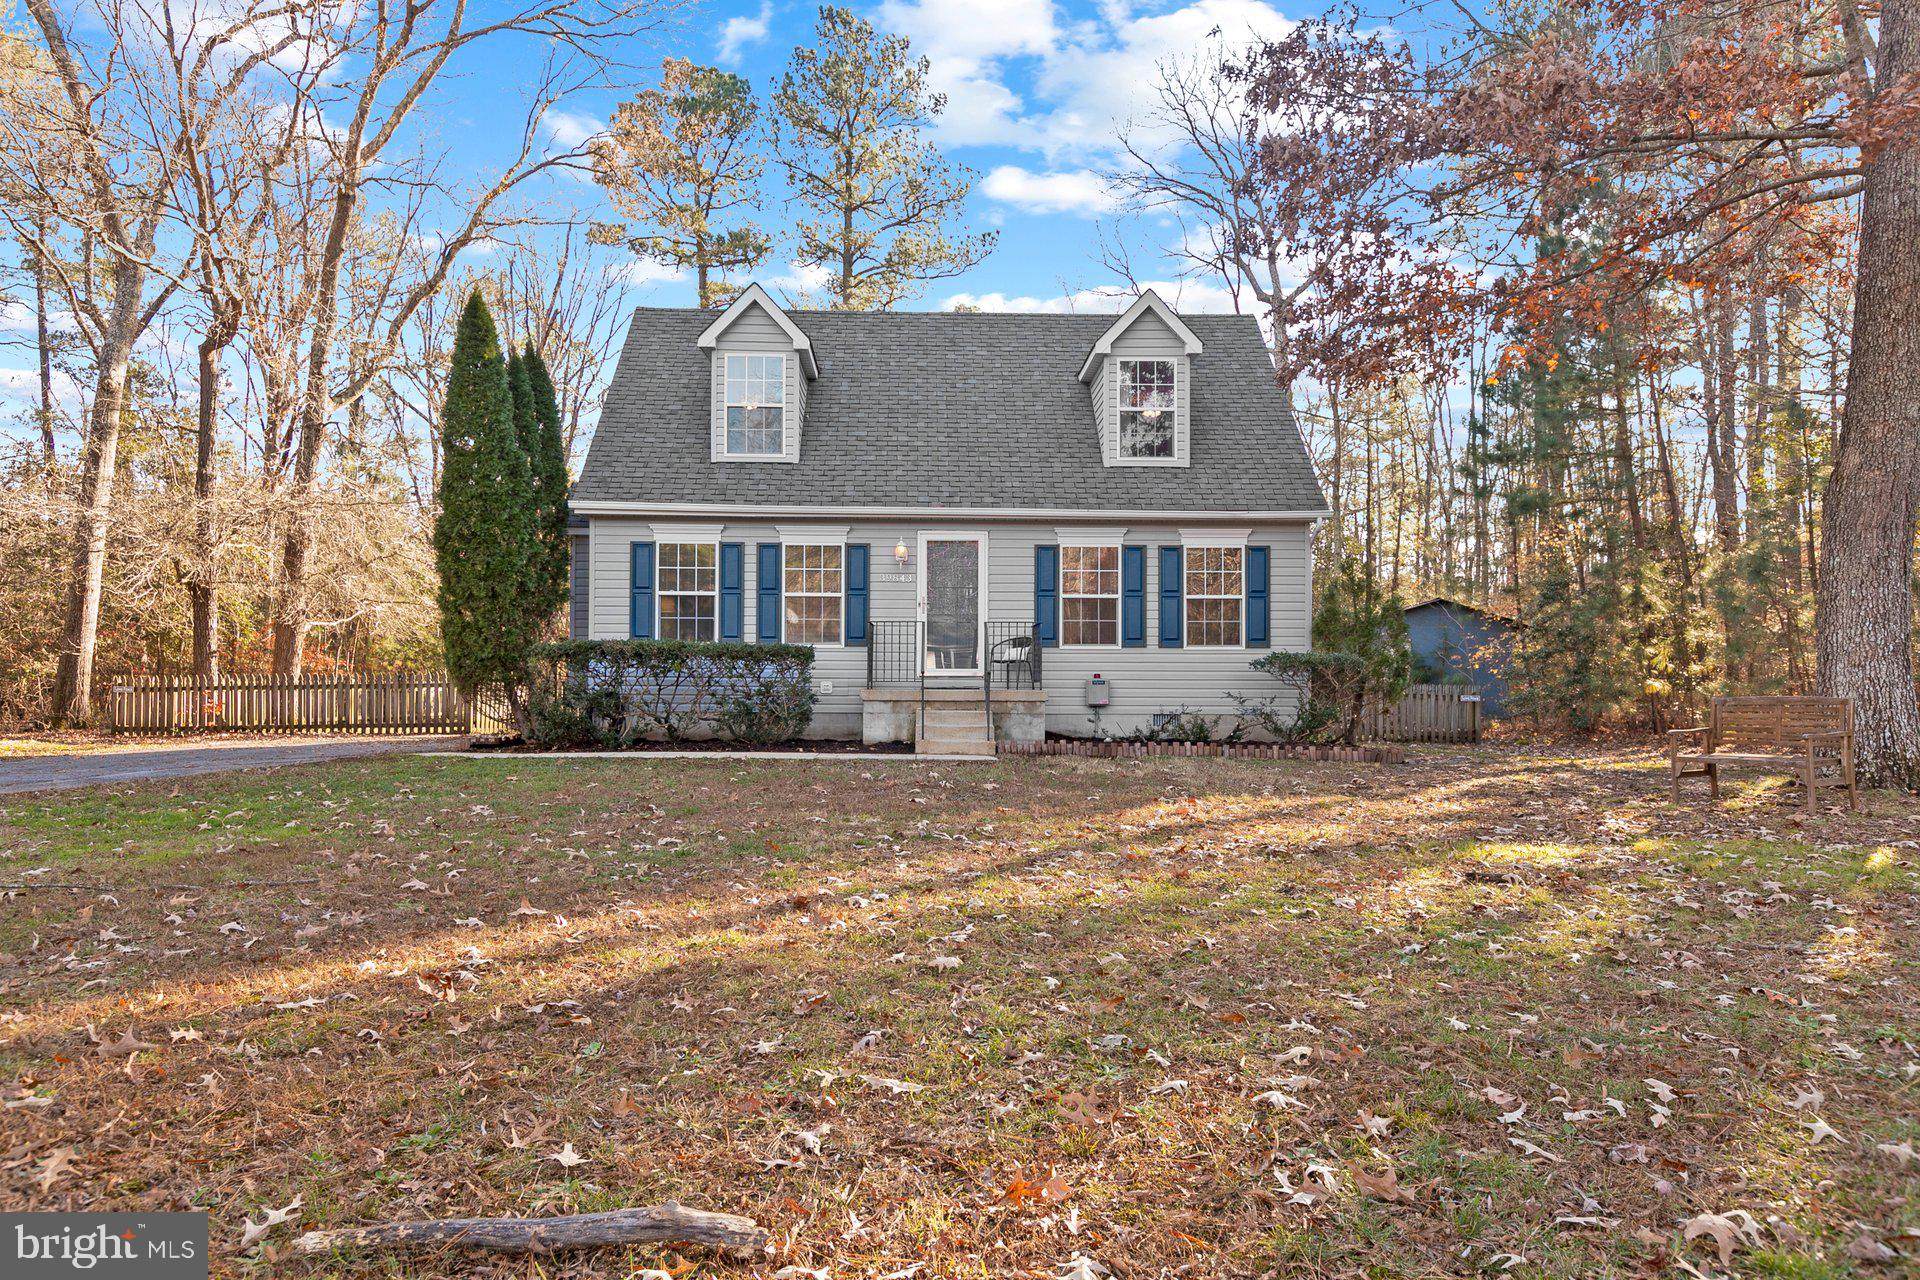 Come home to this adorable Cape Cod with 4 bedrooms and 2 full baths on over an acre in Leonardtown!